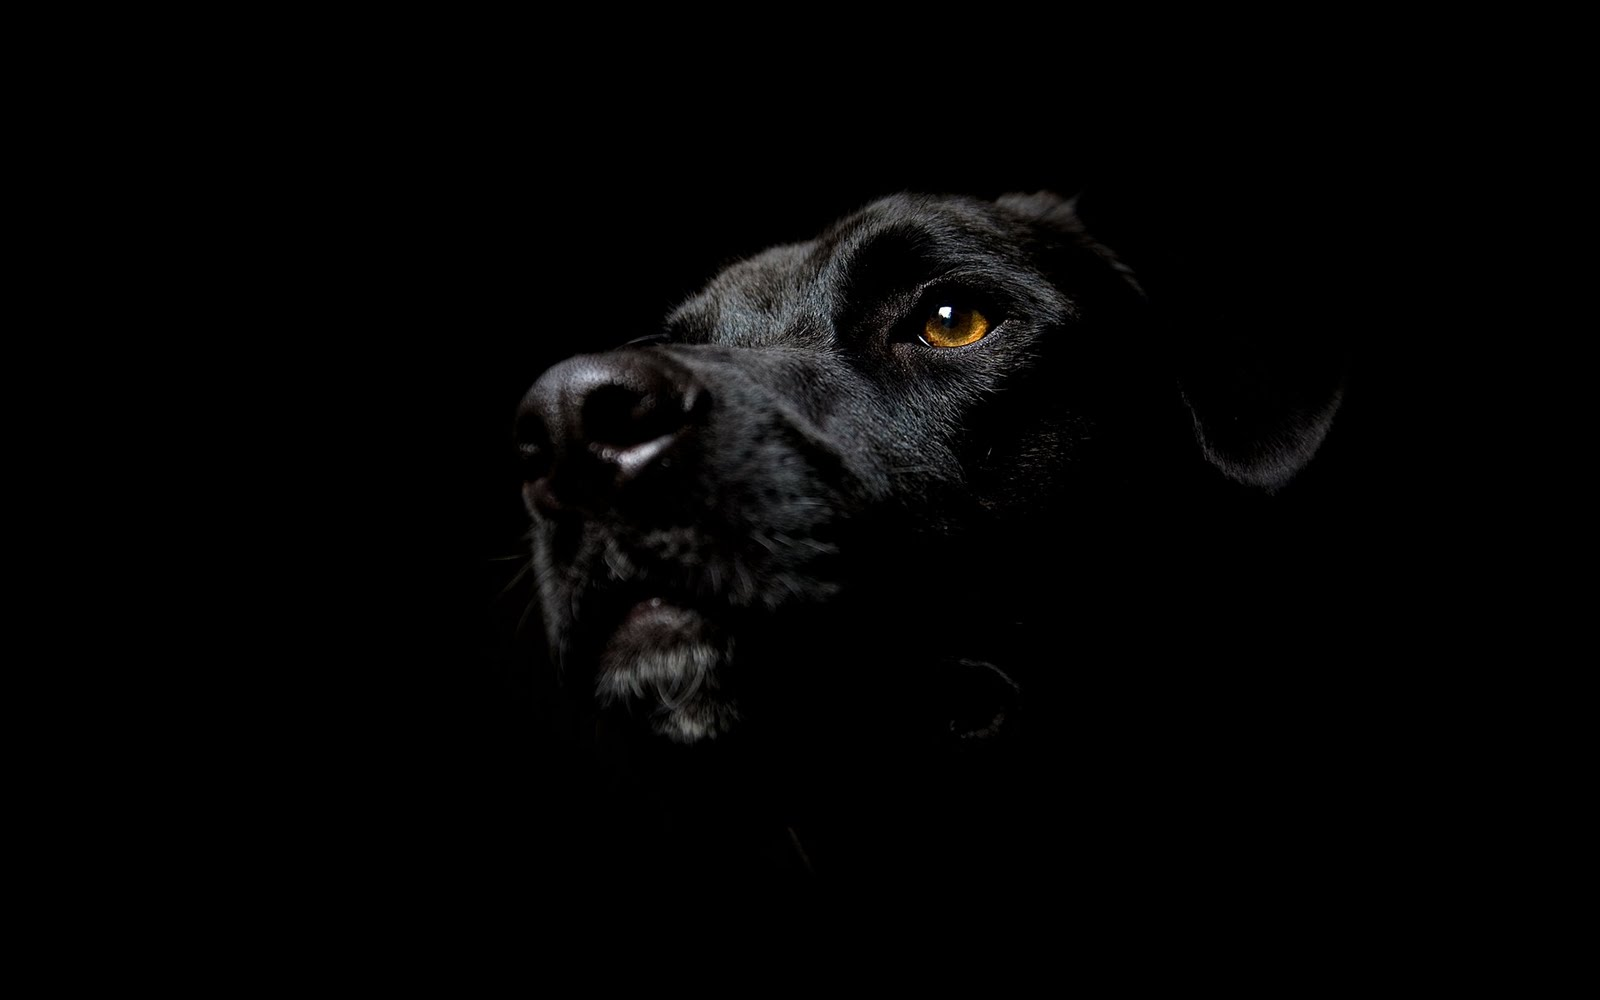 japan: black dog hd wallpapers for desktop backgrounds